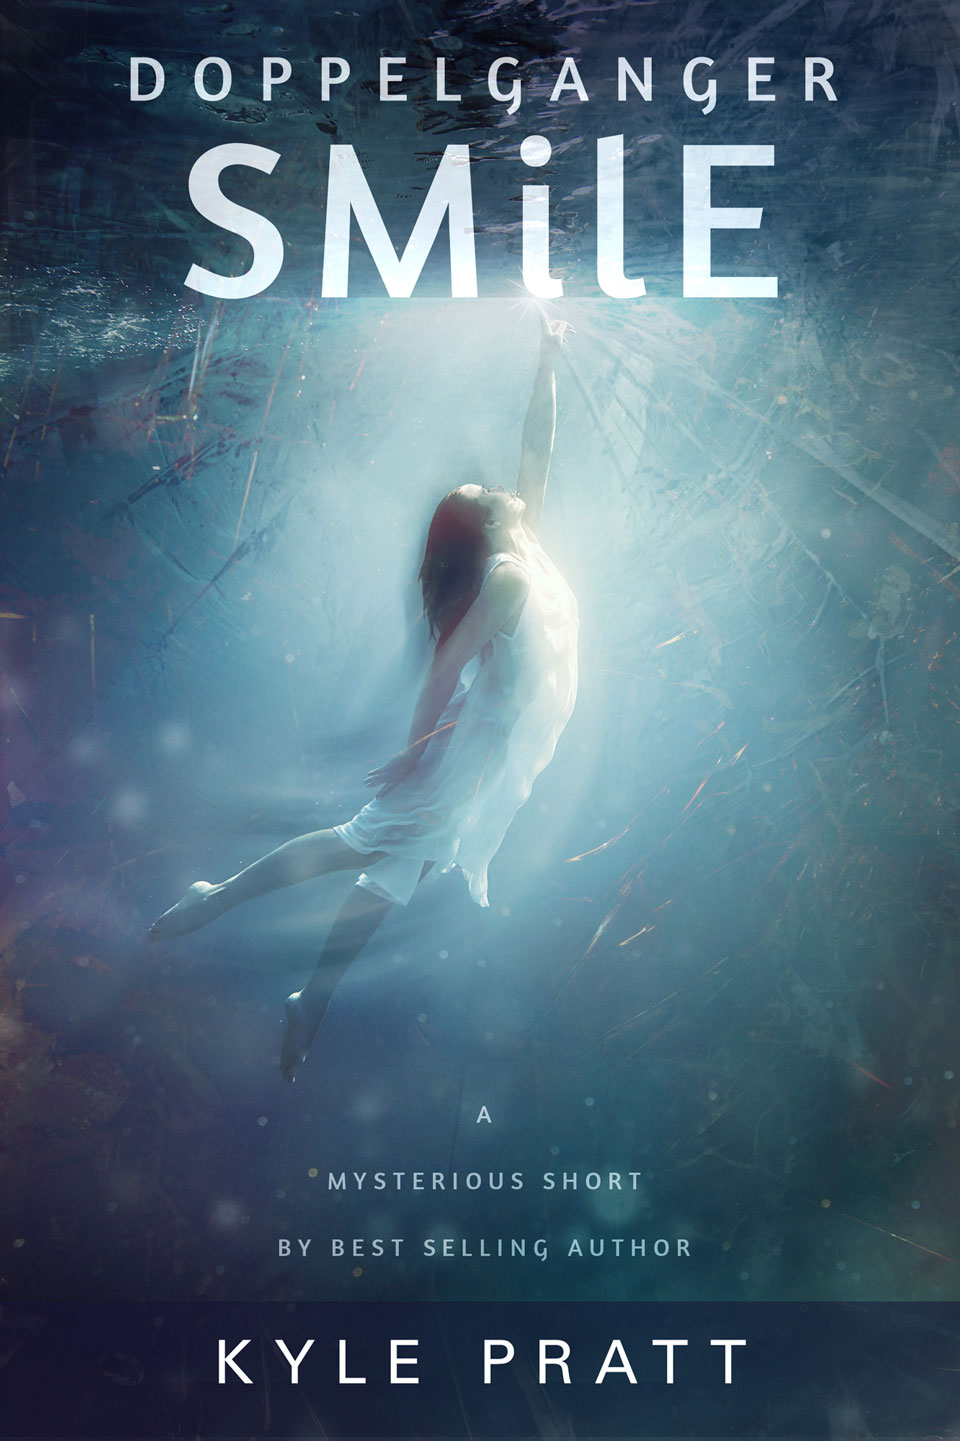 Doppelganger Smile - book cover design